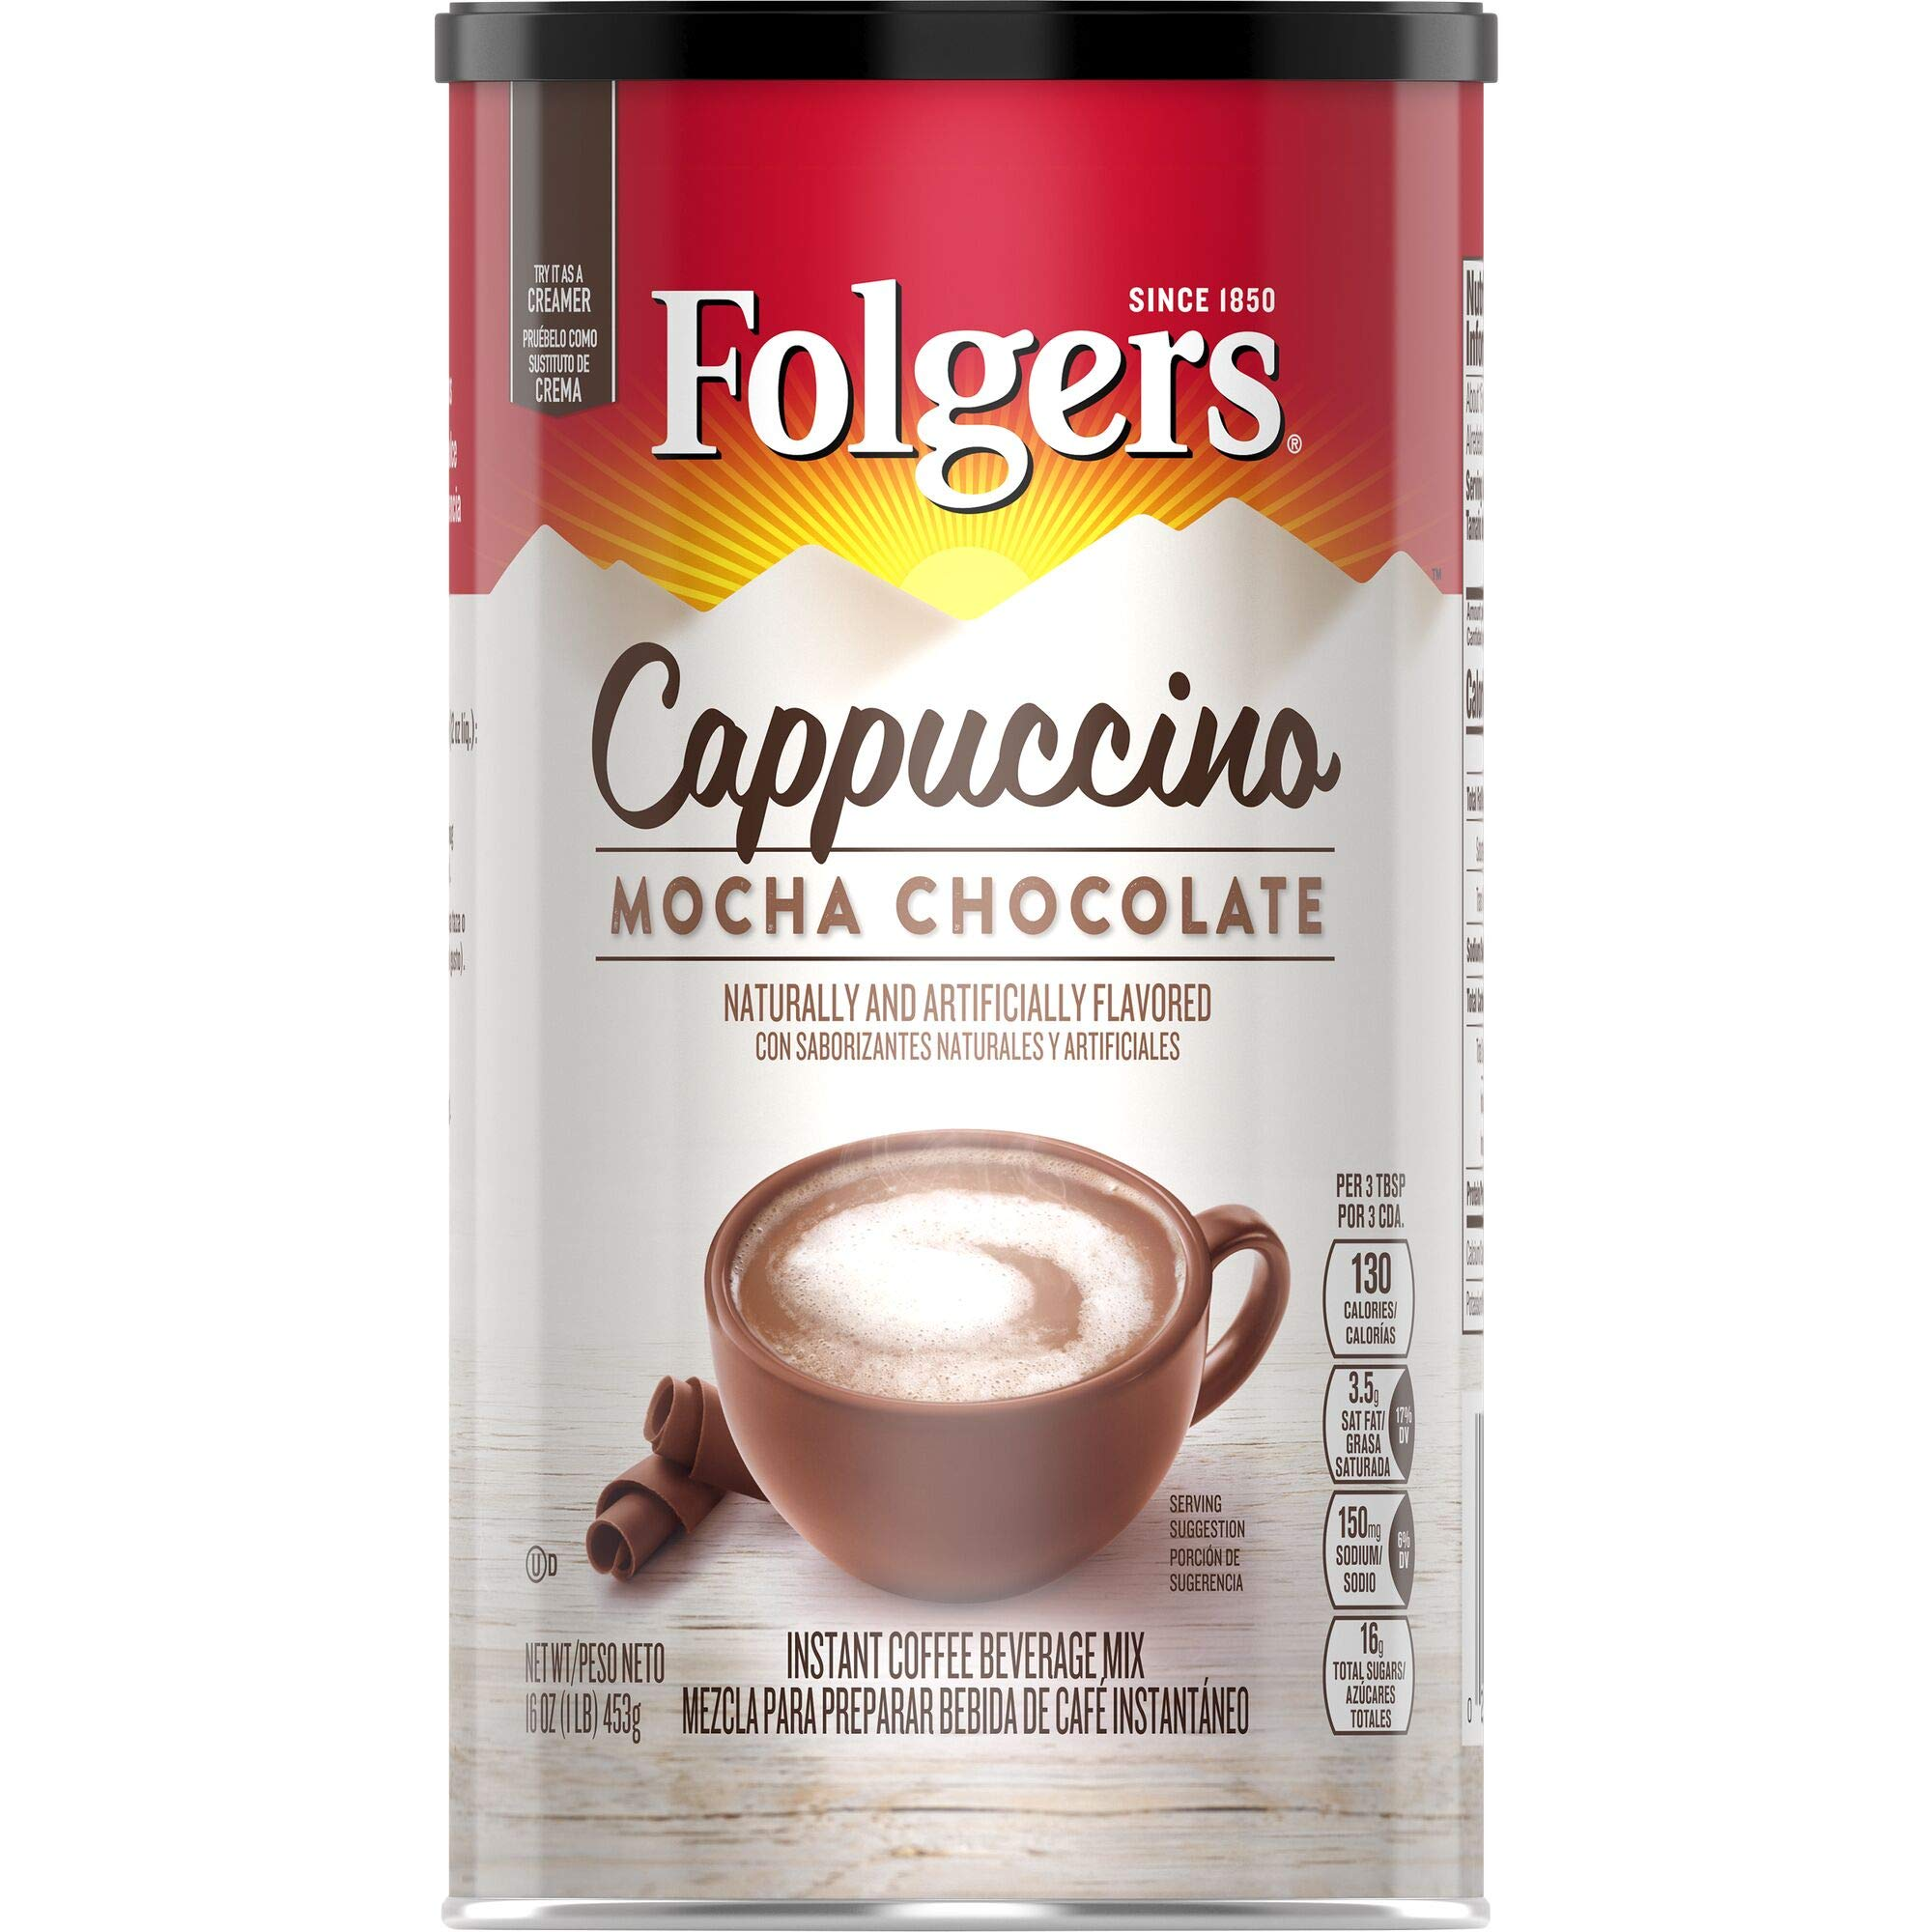 Folgers Cappuccino, Mocha Chocolate Coffee Beverage Mix, 16-Ounces Canisters (Pack of 6), Packaging May Vary by Folgers